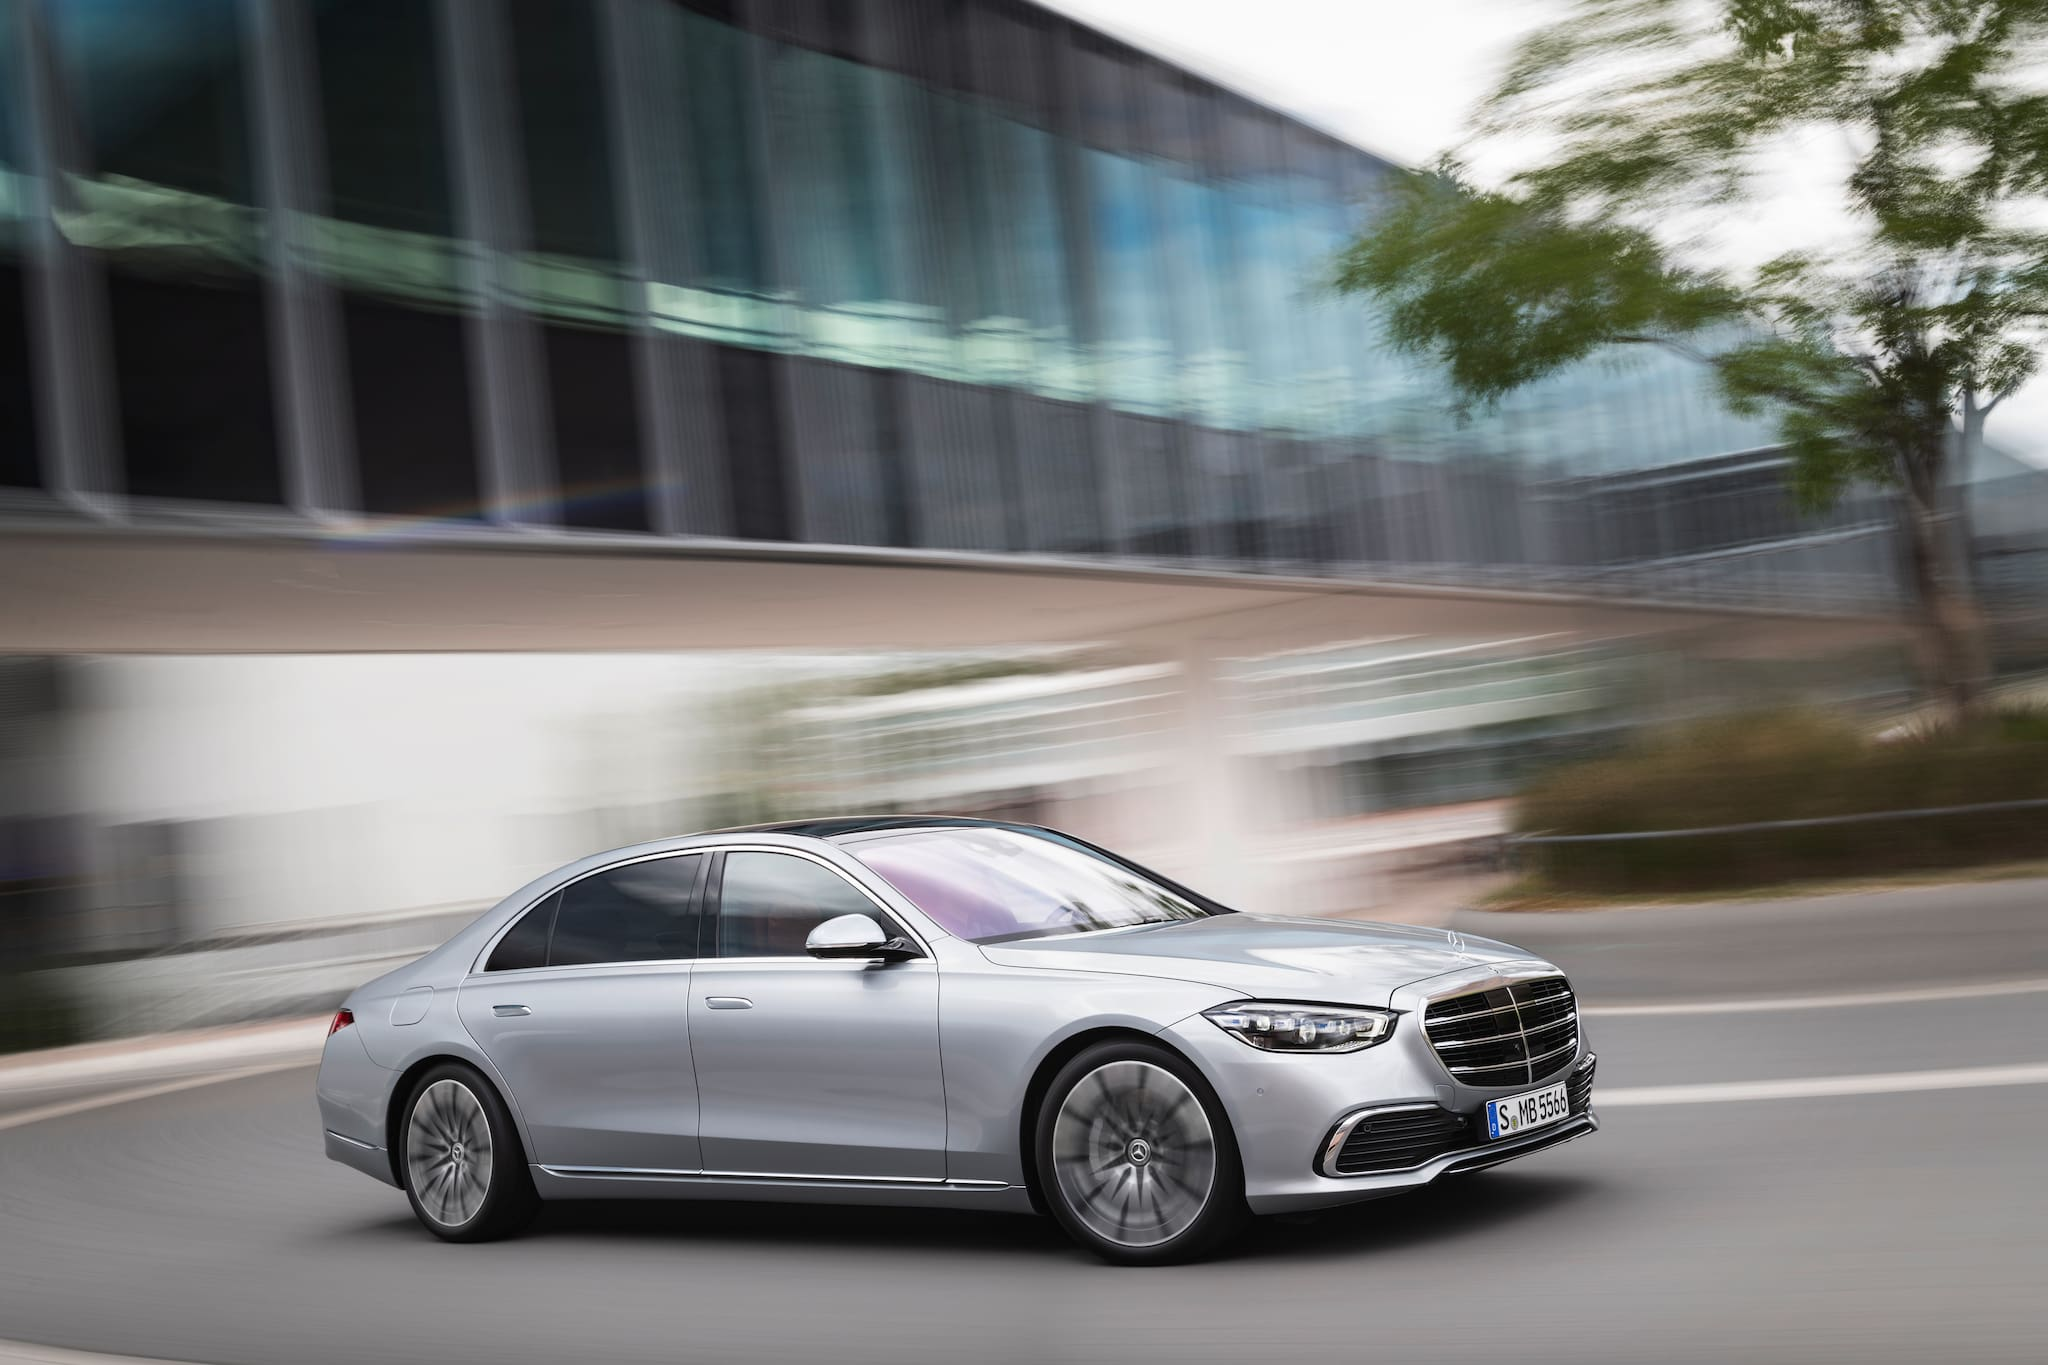 2021 Mercedes-Benz S-Class Unveiled: 5 Things To Know About The Luxury Sedan